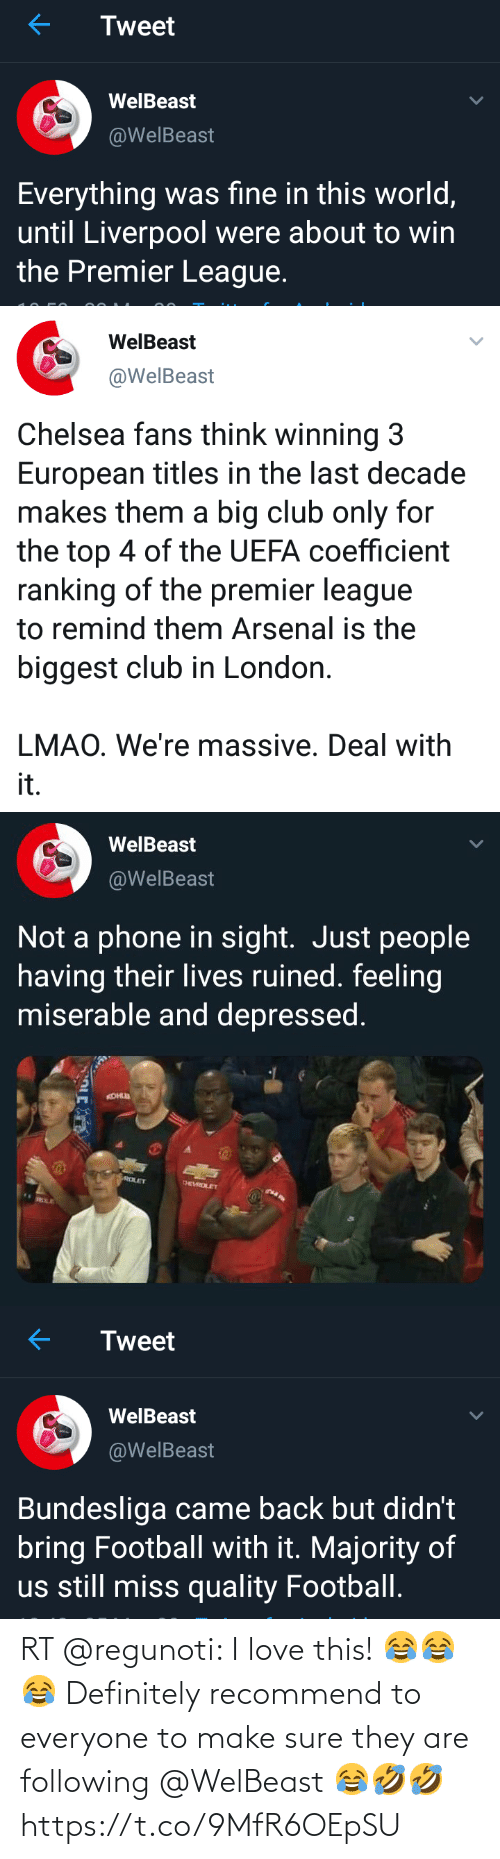 everyone: RT @regunoti: I love this! 😂😂😂 Definitely recommend to everyone to make sure they are following @WelBeast 😂🤣🤣 https://t.co/9MfR6OEpSU